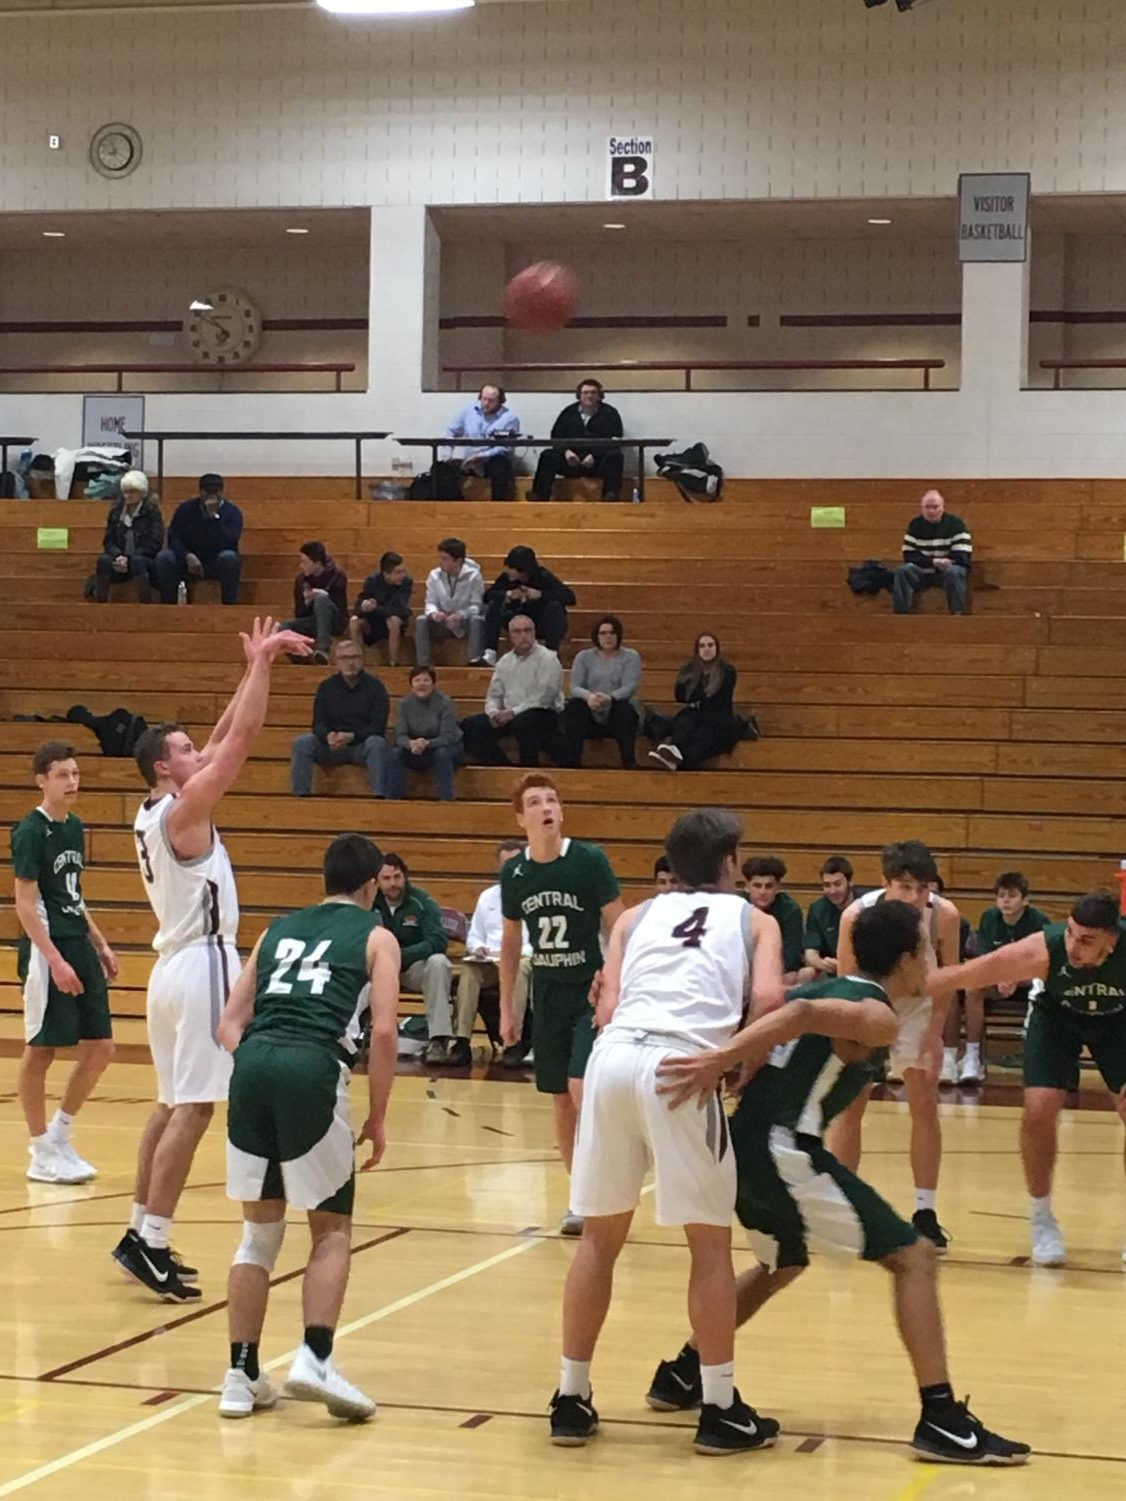 Senior Ryan McNulty shoots (and scores) a free throw that helped to catapult the Little Lions to a 77-53 victory against Central Dauphin.